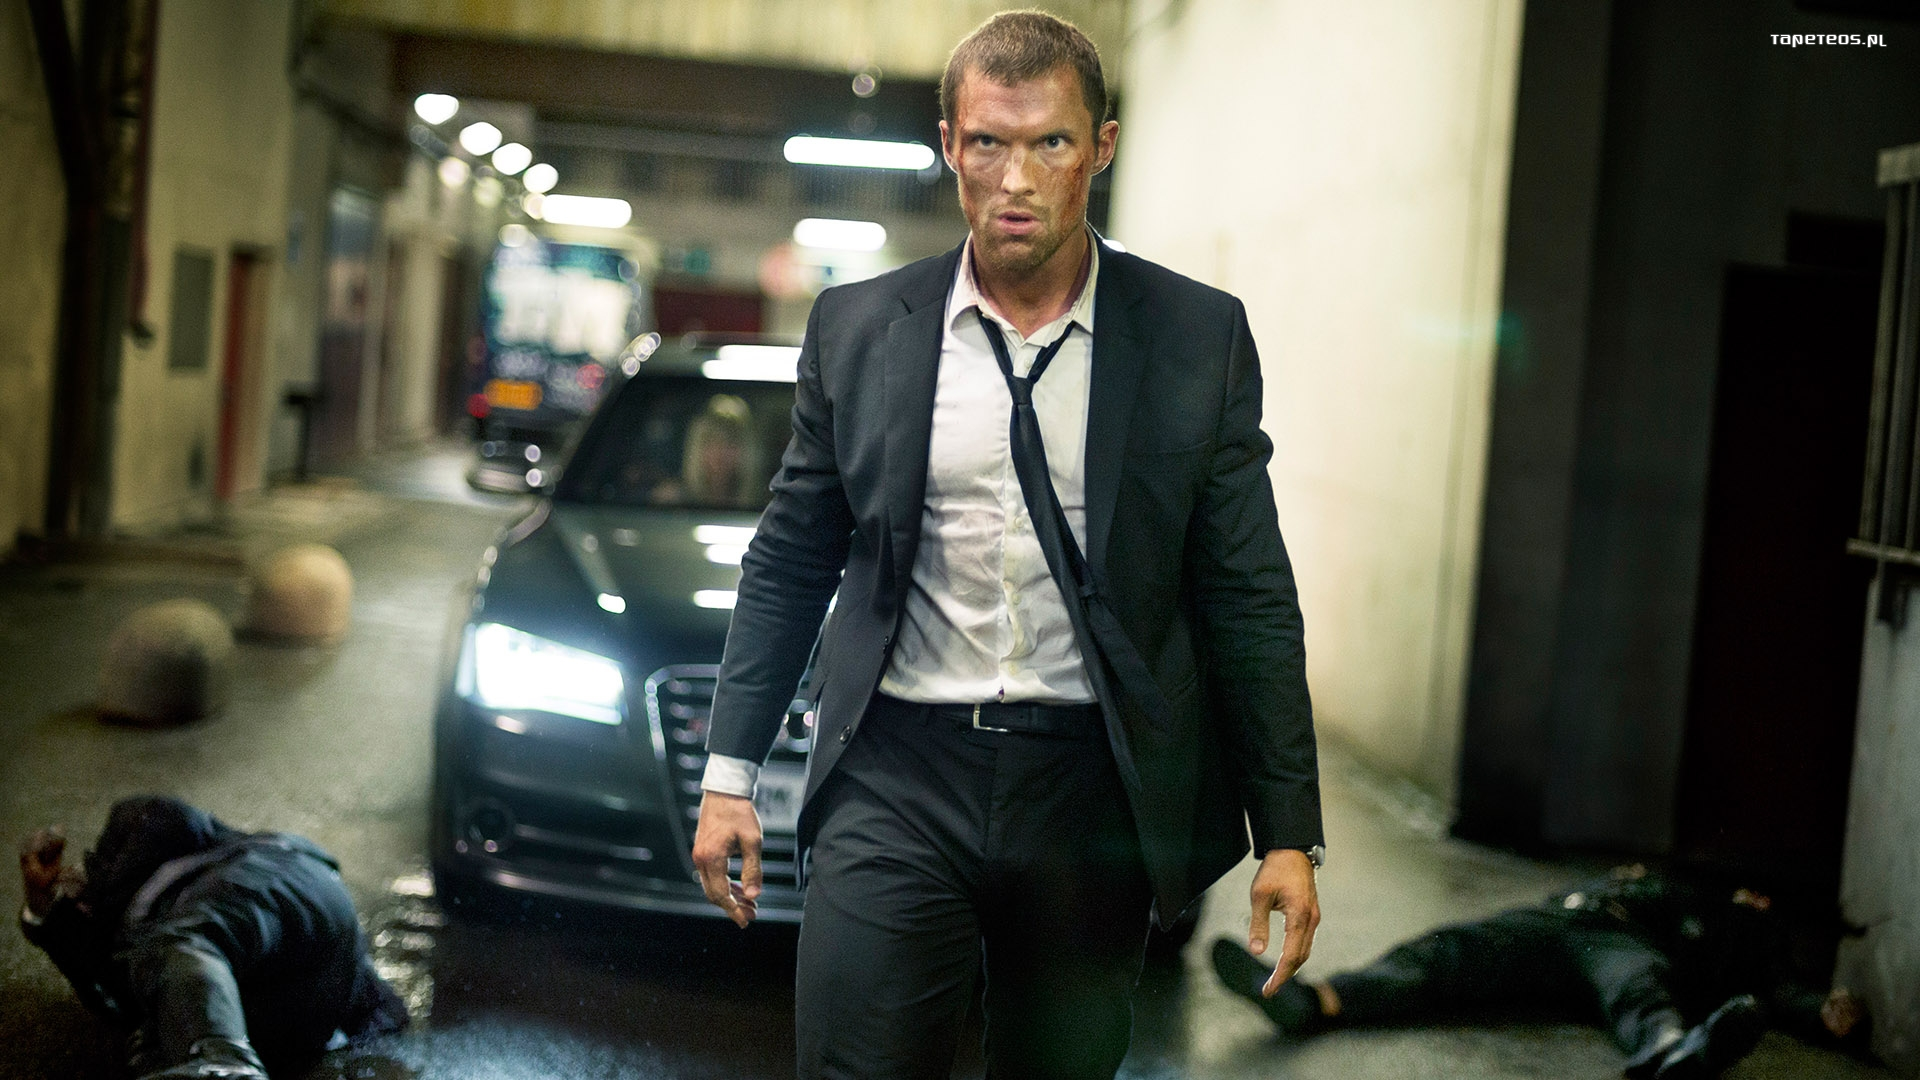 The Transporter Refueled (2015) Transporter Nowa moc 004 Ed Skrein jako Frank Martin